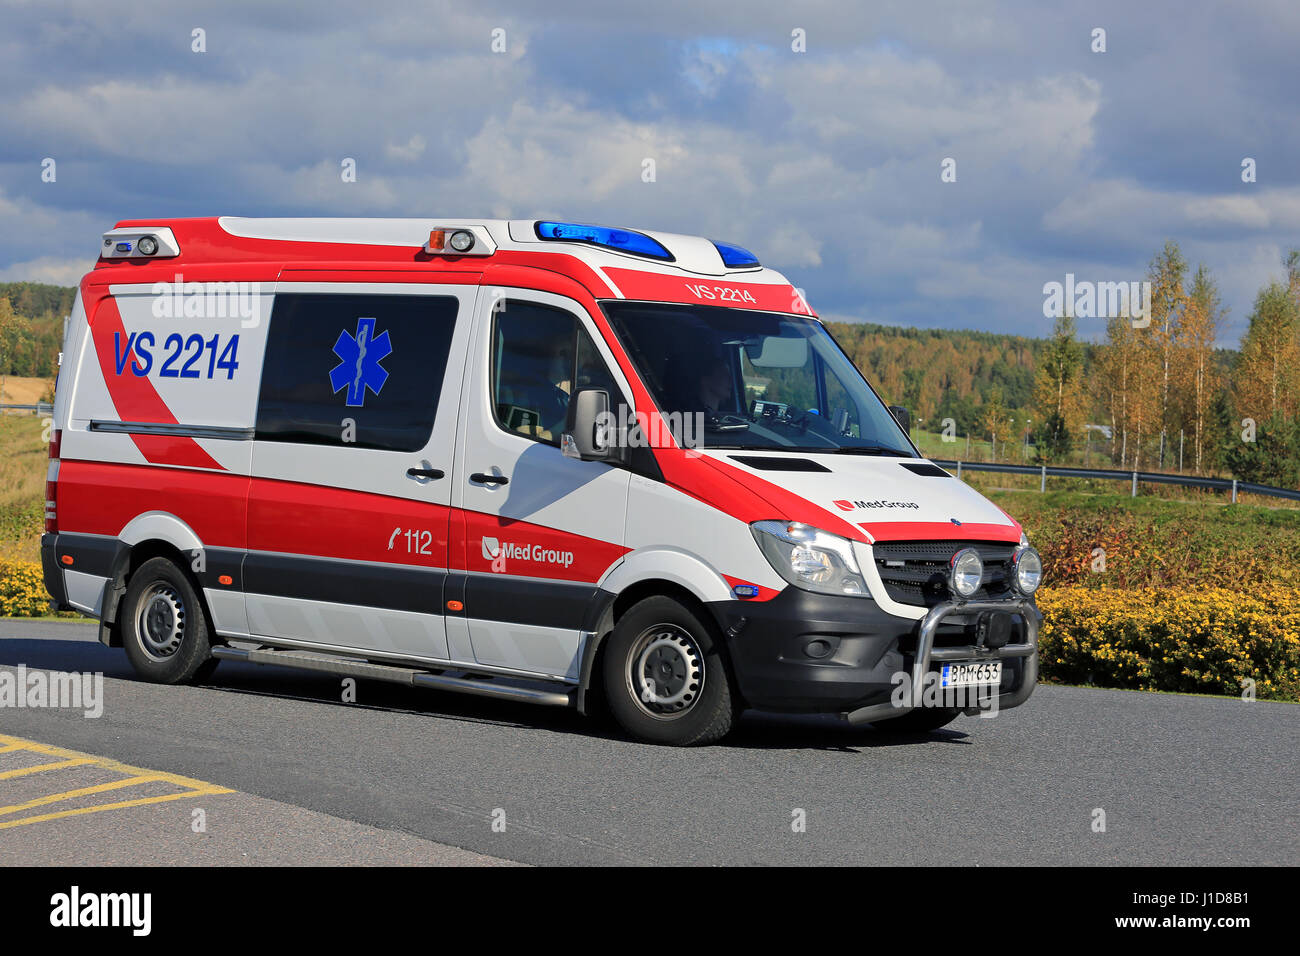 SALO, FINLAND - SEPTEMBER 18, 2016: Ambulance gets an emergency call and rushes ahead along road on a sunny autumn - Stock Image